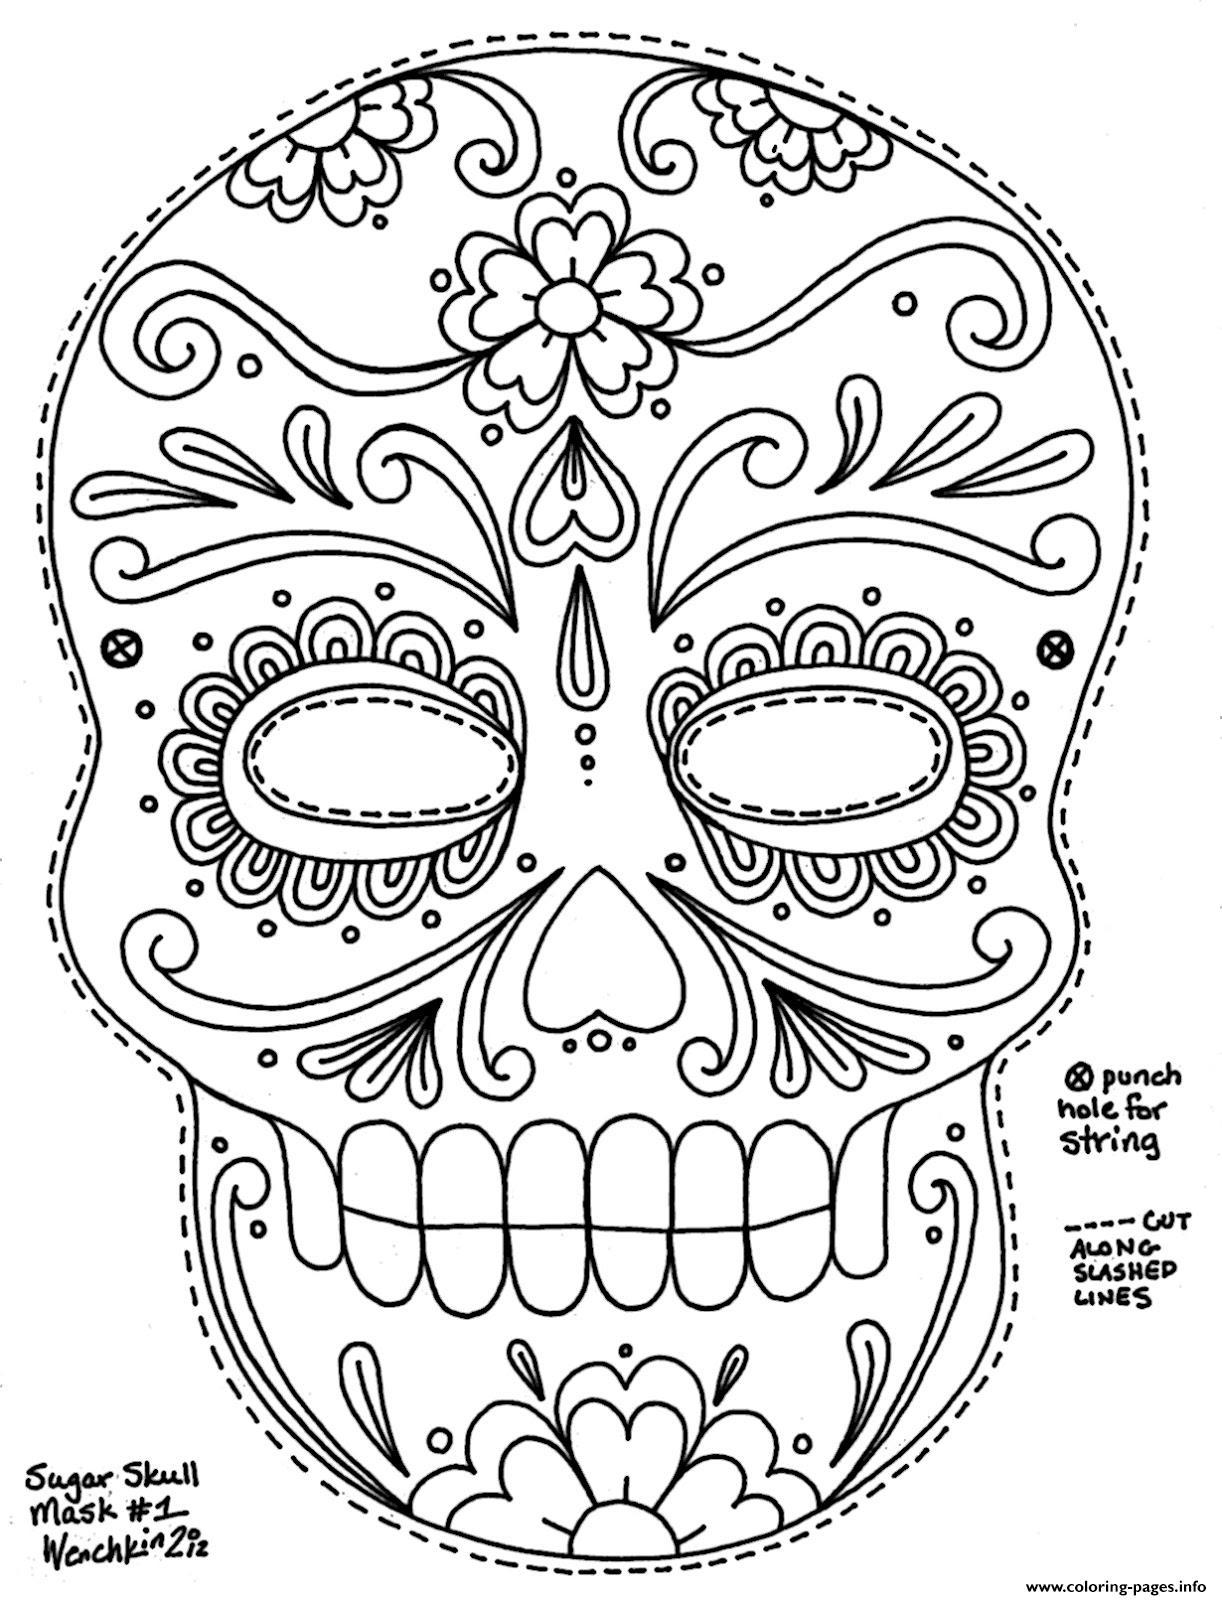 Simple Sugar Skull Hd Adult Big Size coloring pages